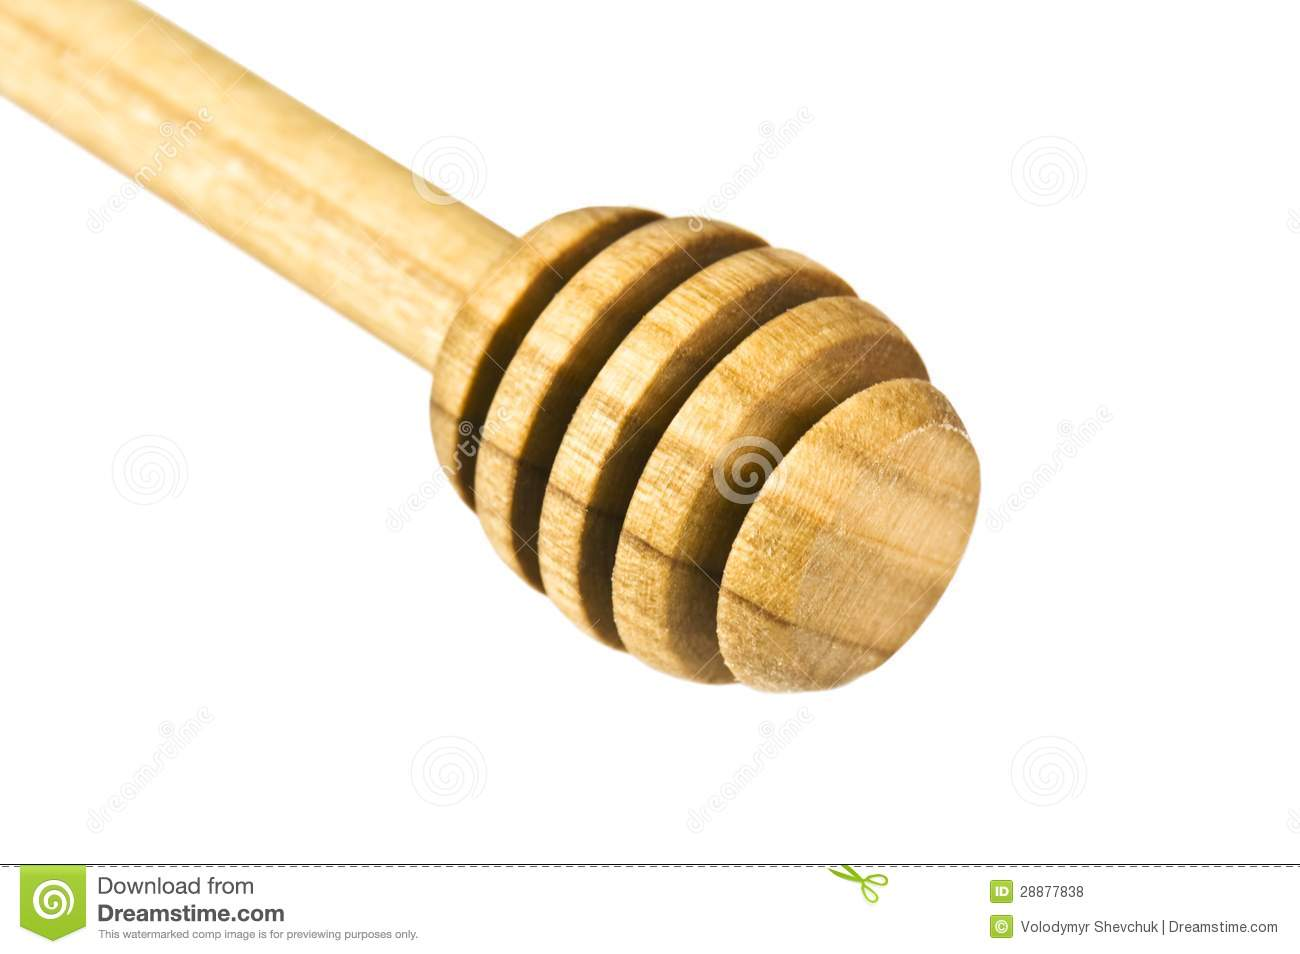 Wooden Honey Stick Royalty Free Stock Photos - Image: 28877838